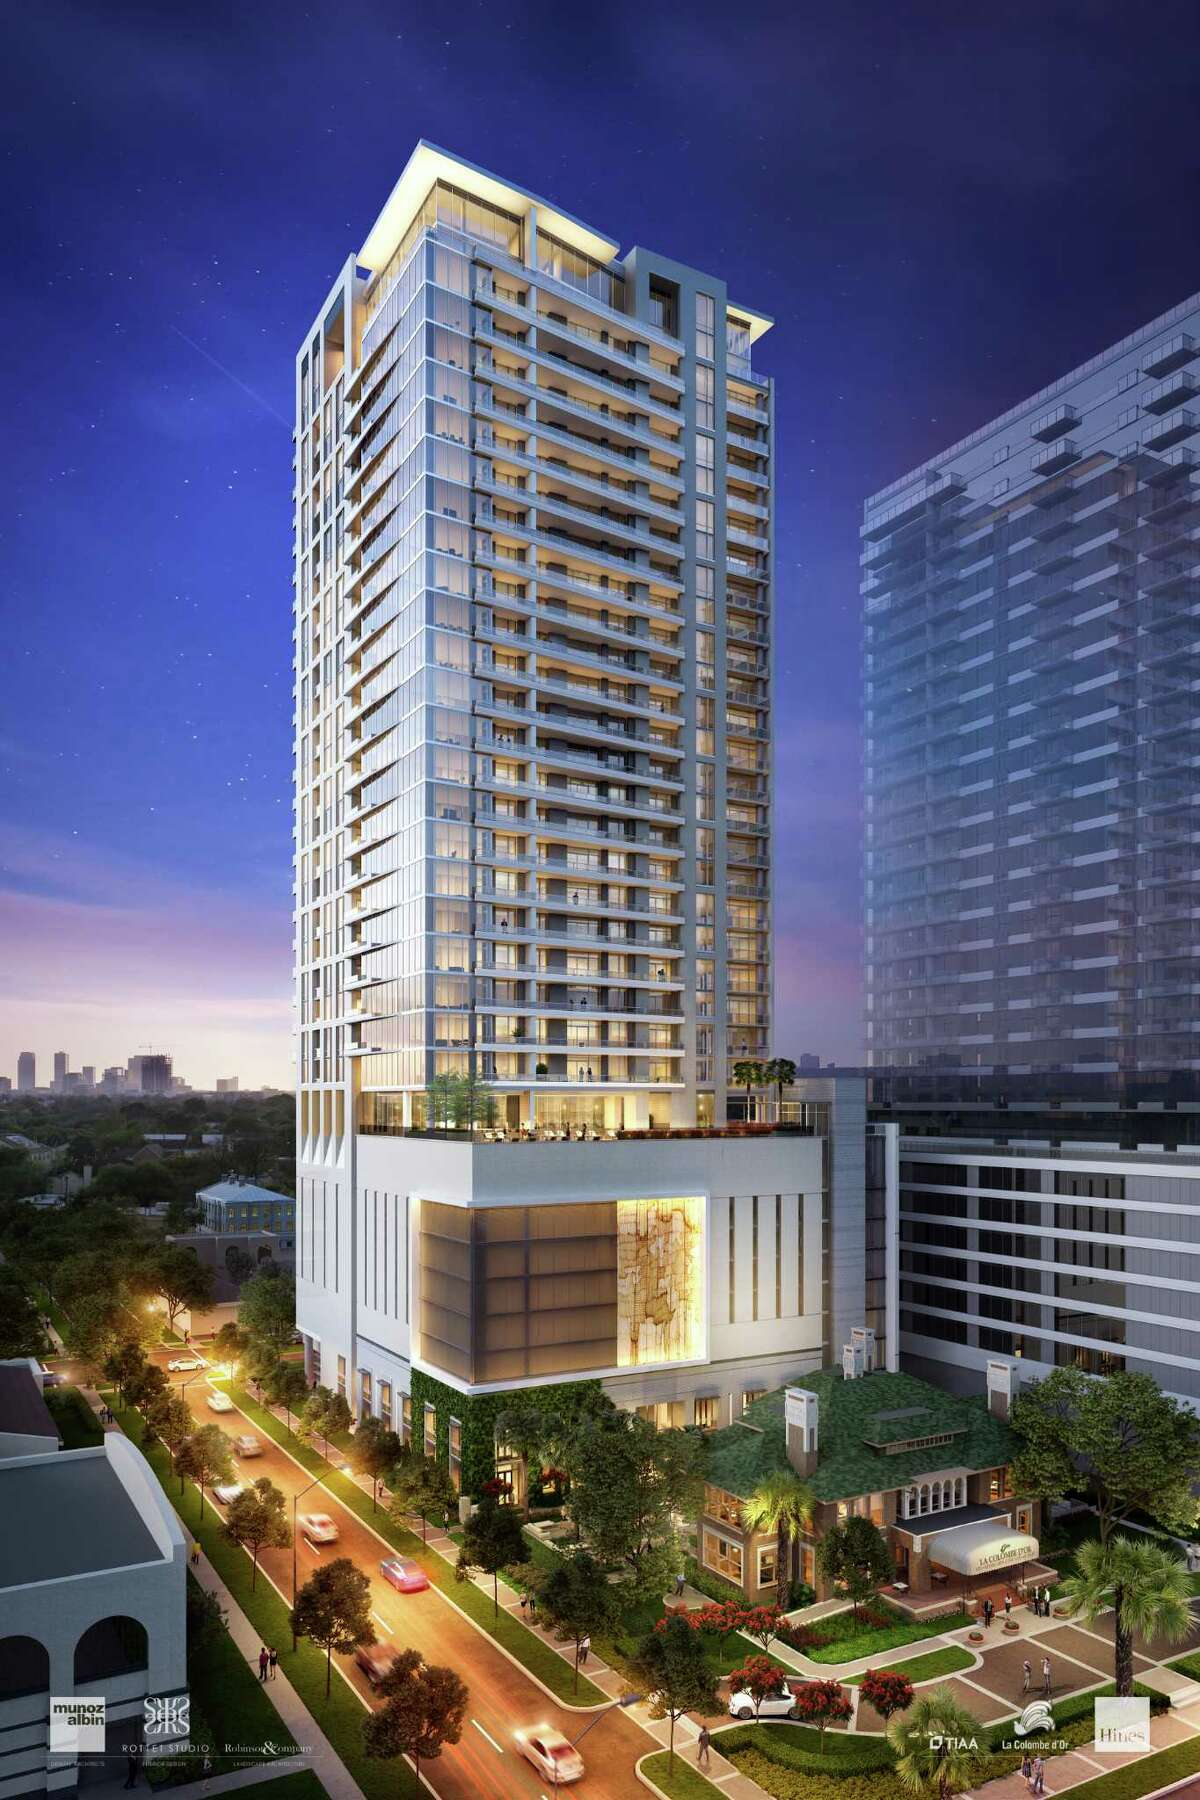 A rendering of the east side of the Residences at La Colombe d'Or, showing how the Zimmerman family's boutique hotel in the historic Fondren House at 3410 Montrose Blvd. will be preserved in front of a new 34-story luxury apartment tower designed by Munoz + Albin Architecture and Planning, with interiors by Rottet Studio.